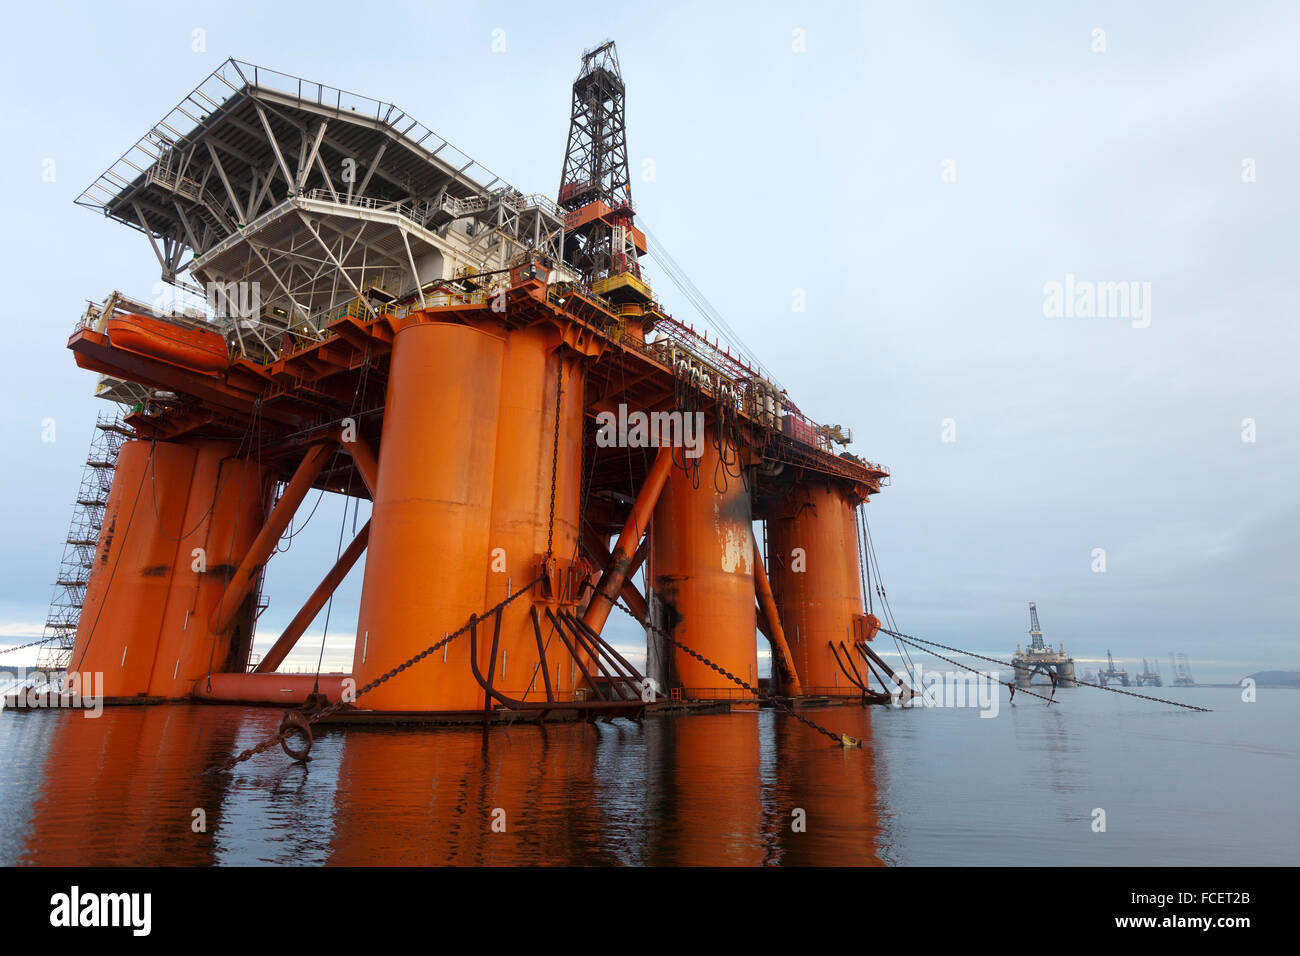 Oil rigs in the Cromarty Firth, Scotland - Stock Image